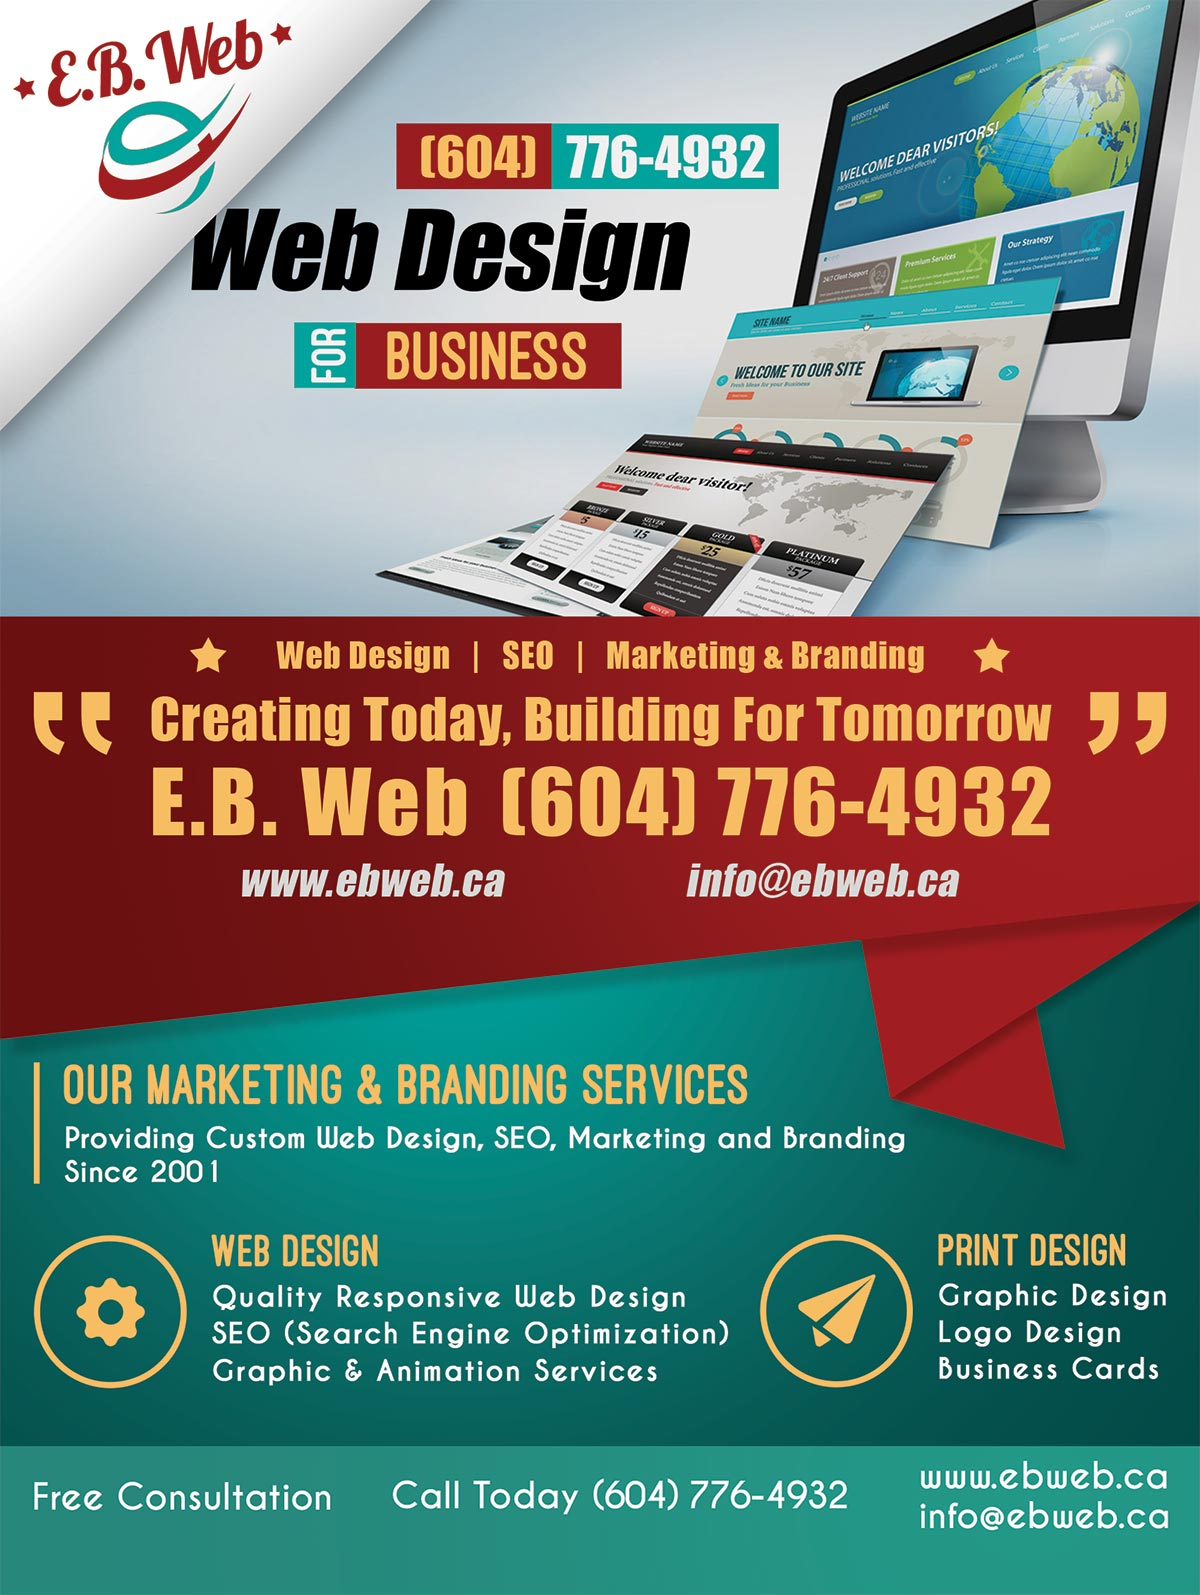 E.B. Web, Web Design For Business Mega Flyer Advertisement For Abbotsford, The Fraser Valley and the Lower Mainland.